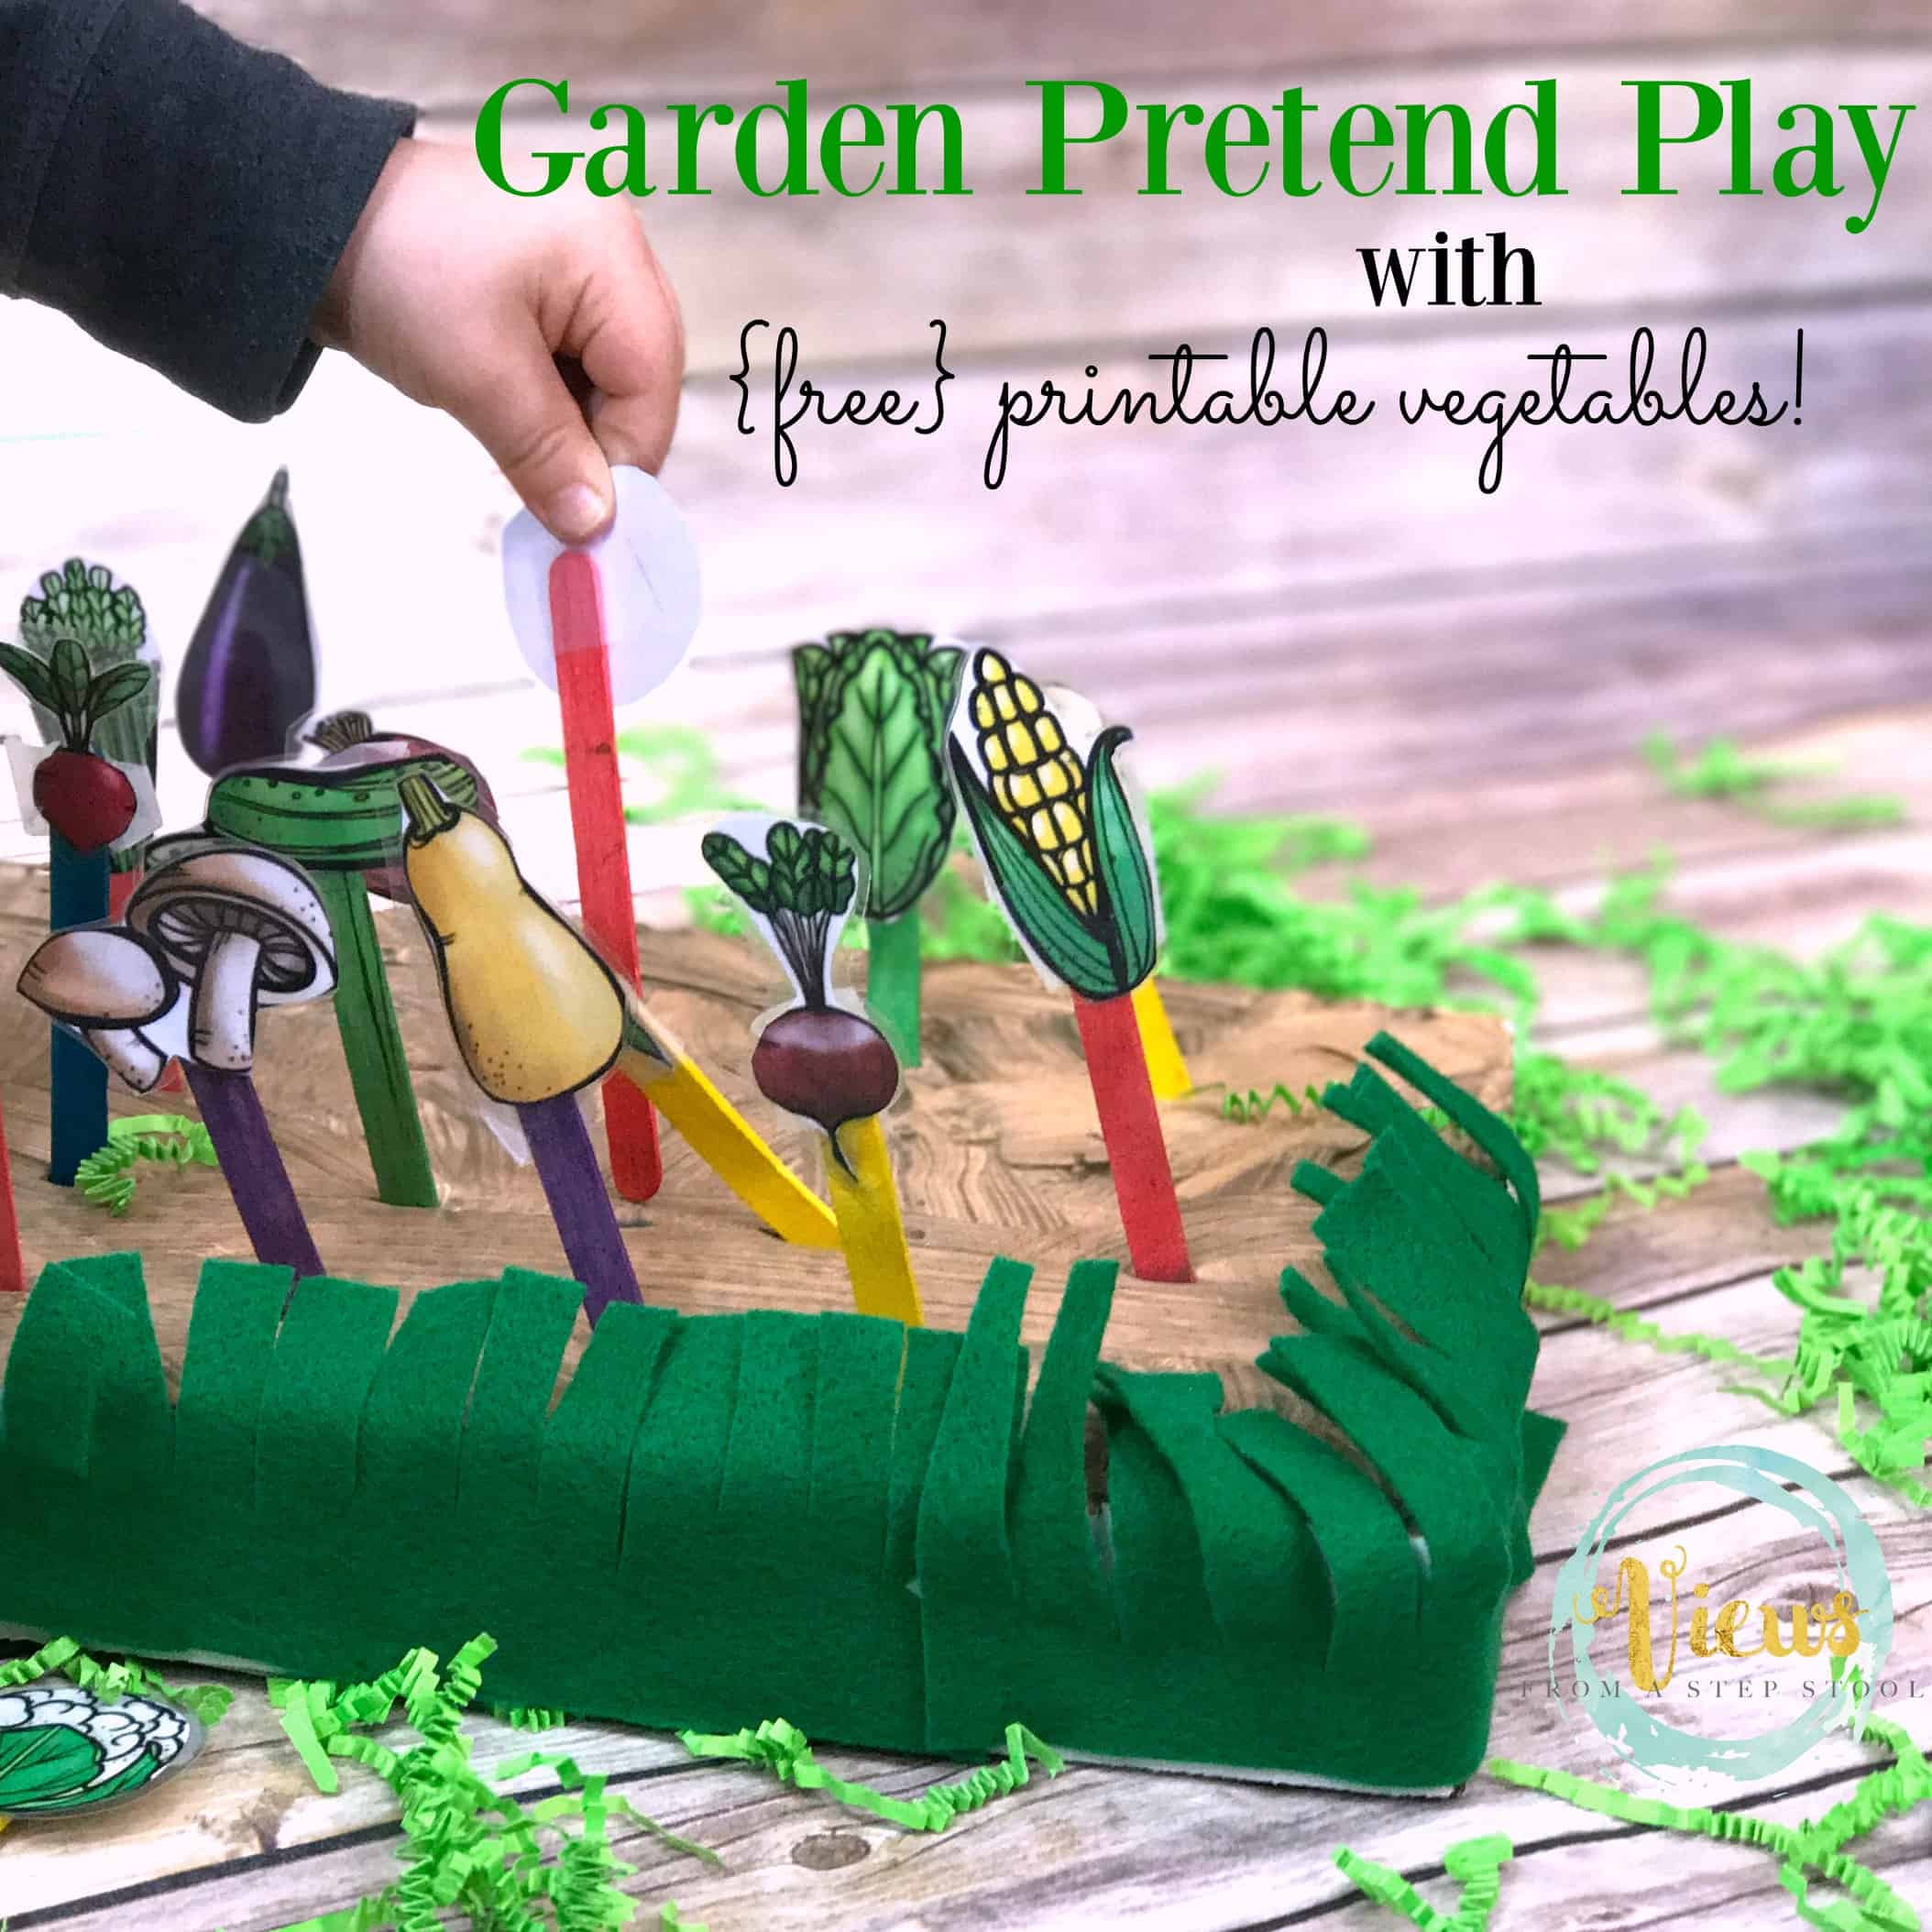 garden pretend play square fb